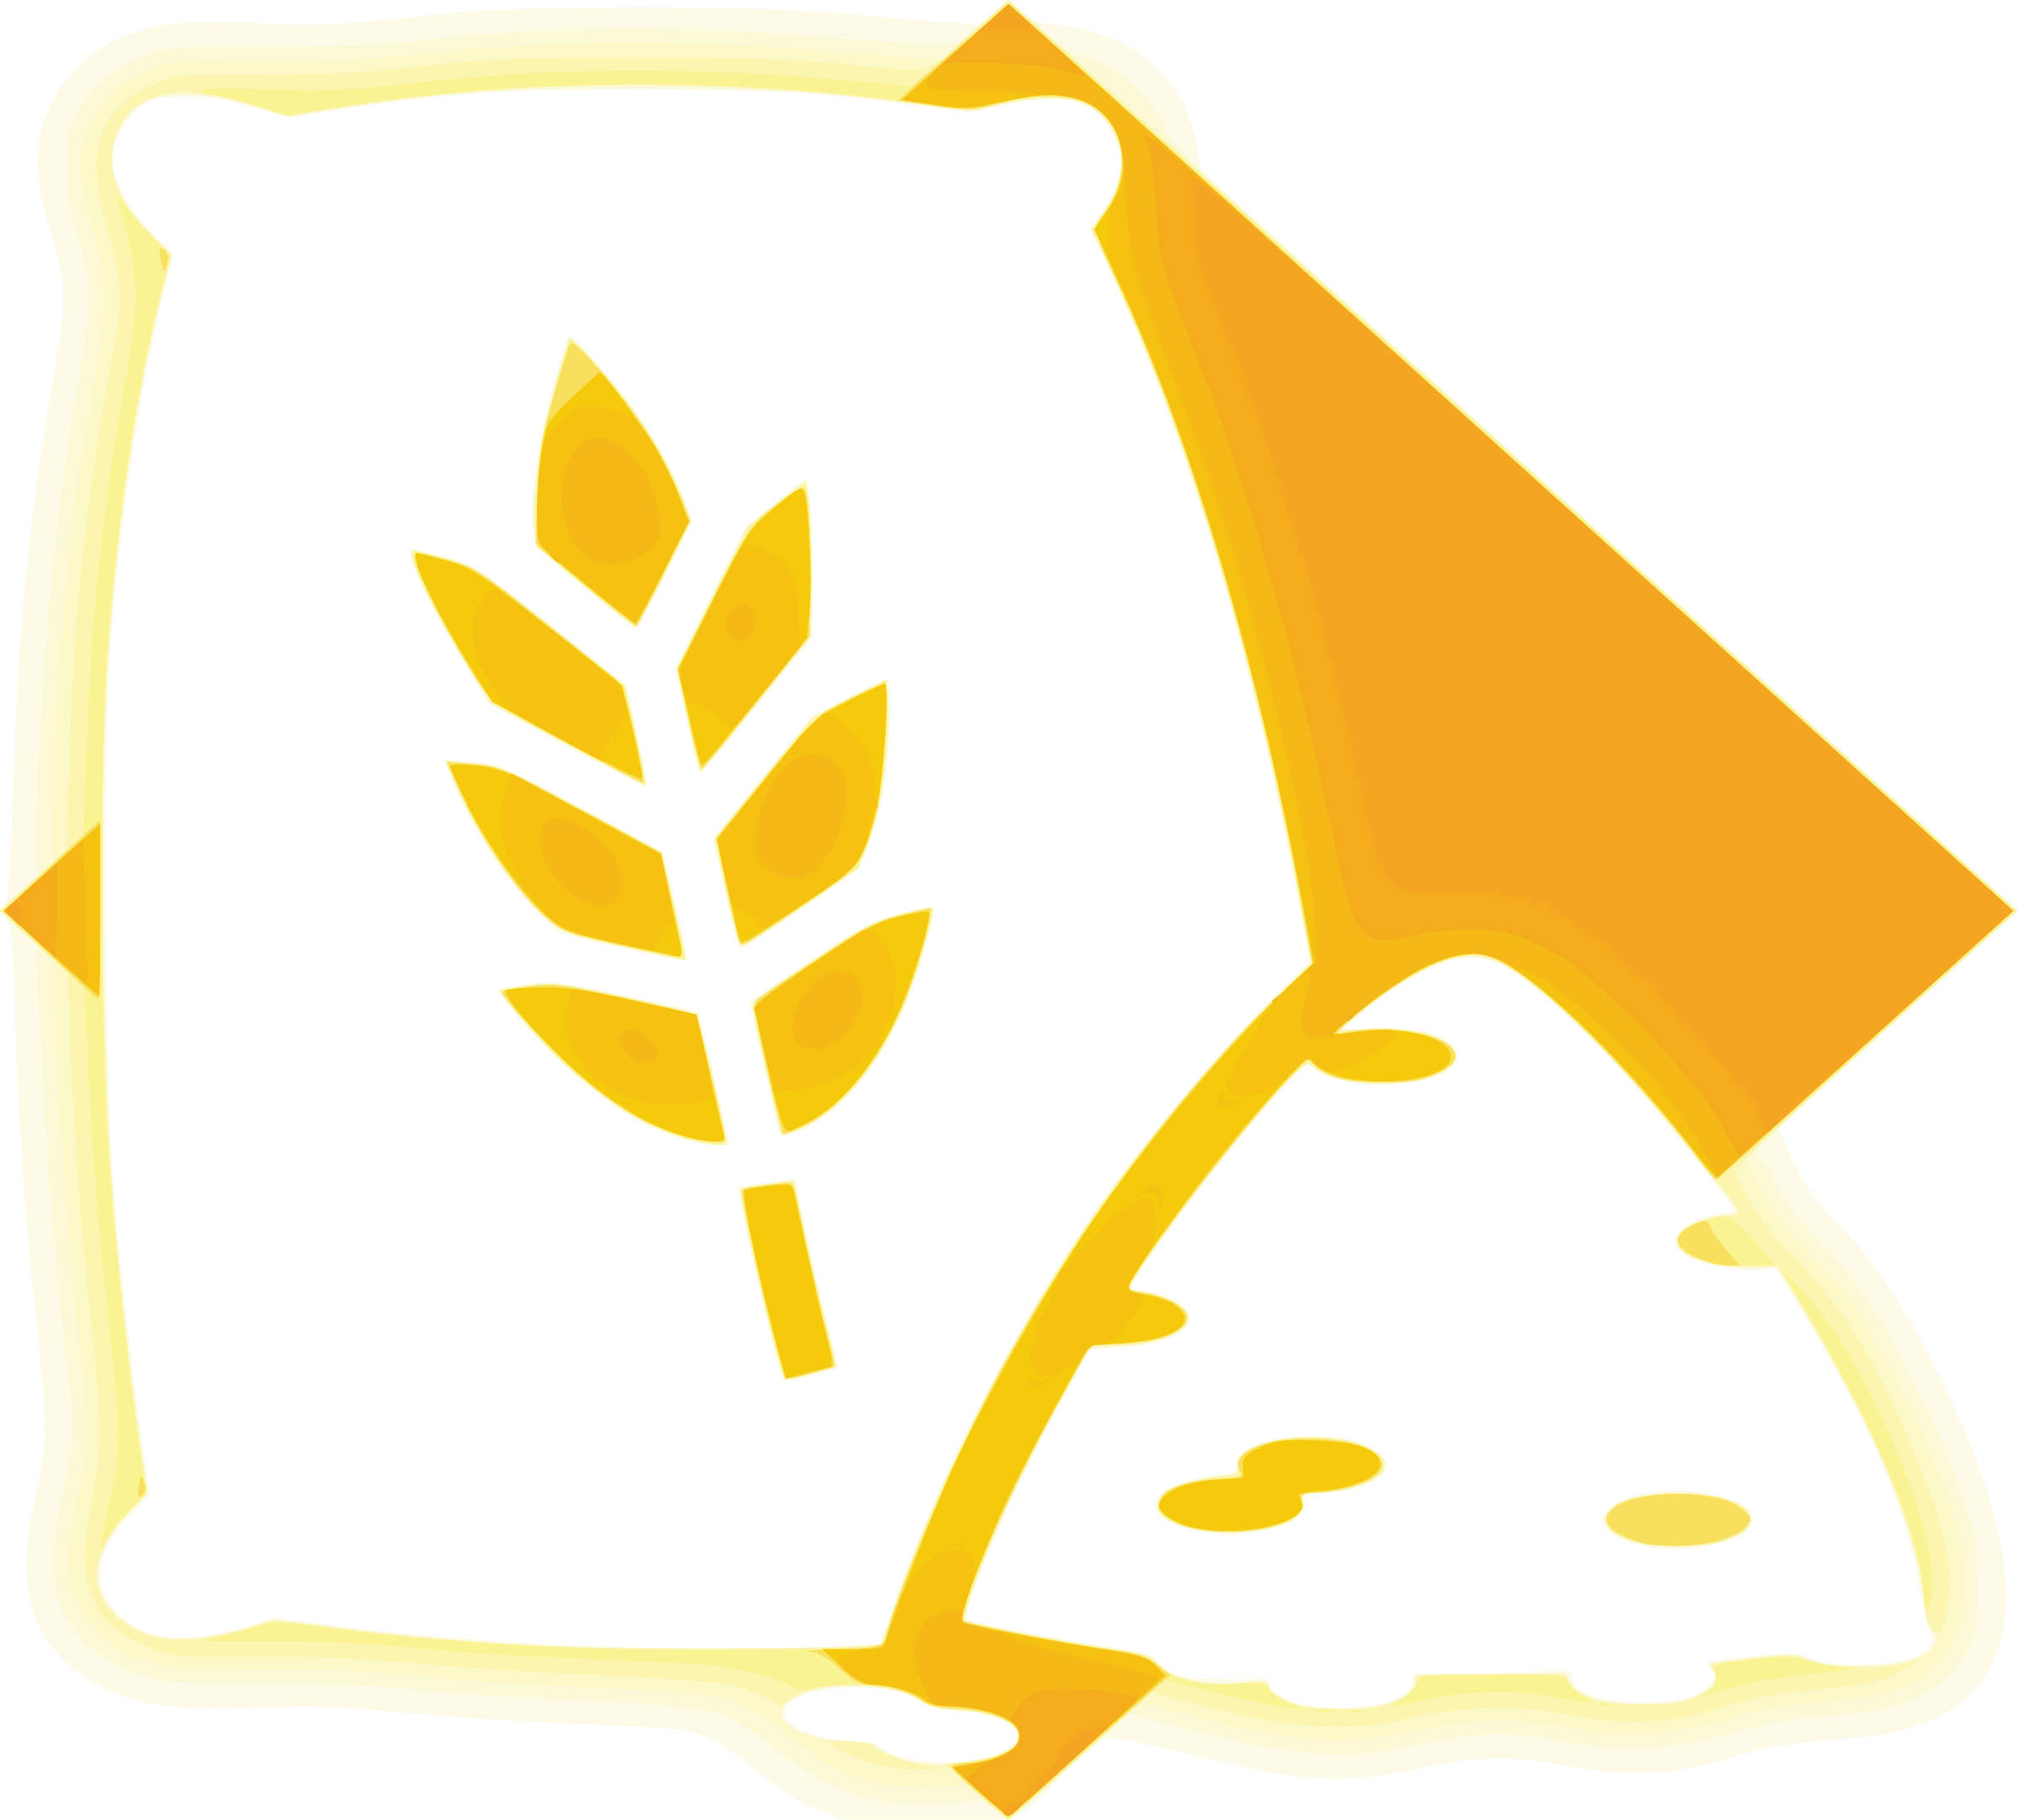 Grain icon icons png. Grains clipart wheat